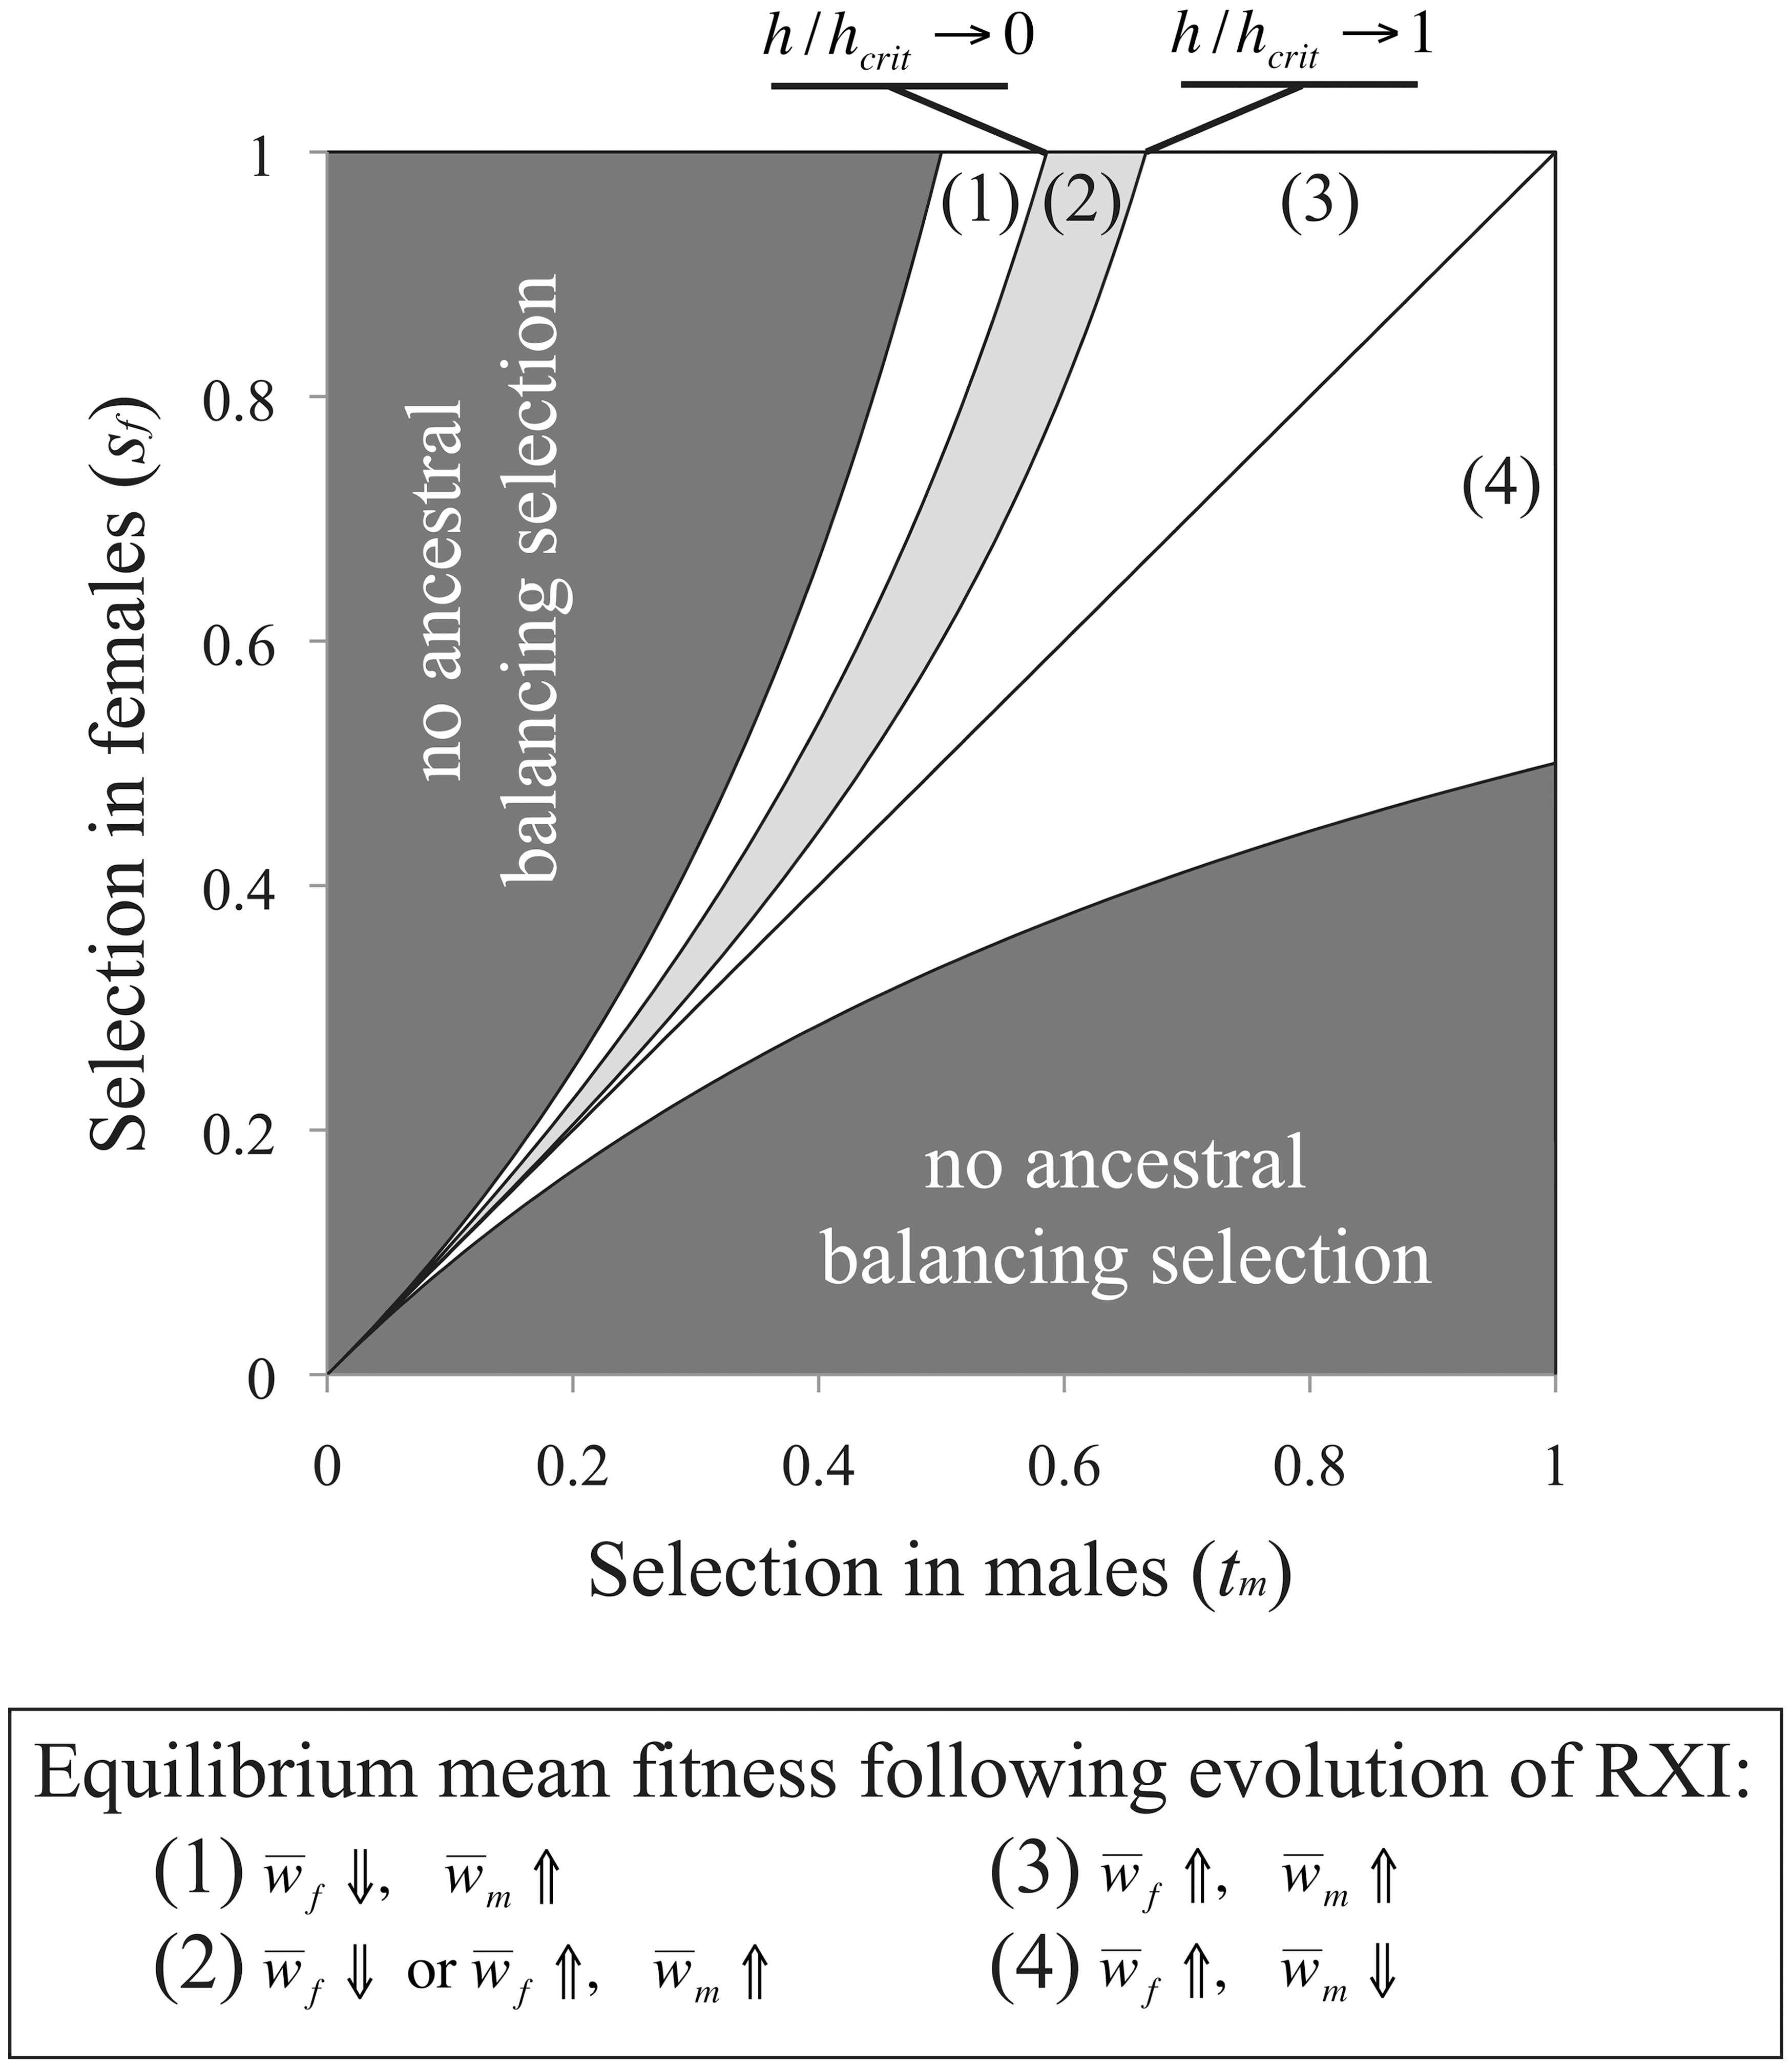 Sexually antagonistic fitness variation and the change in mean fitness following the evolution of RXI.